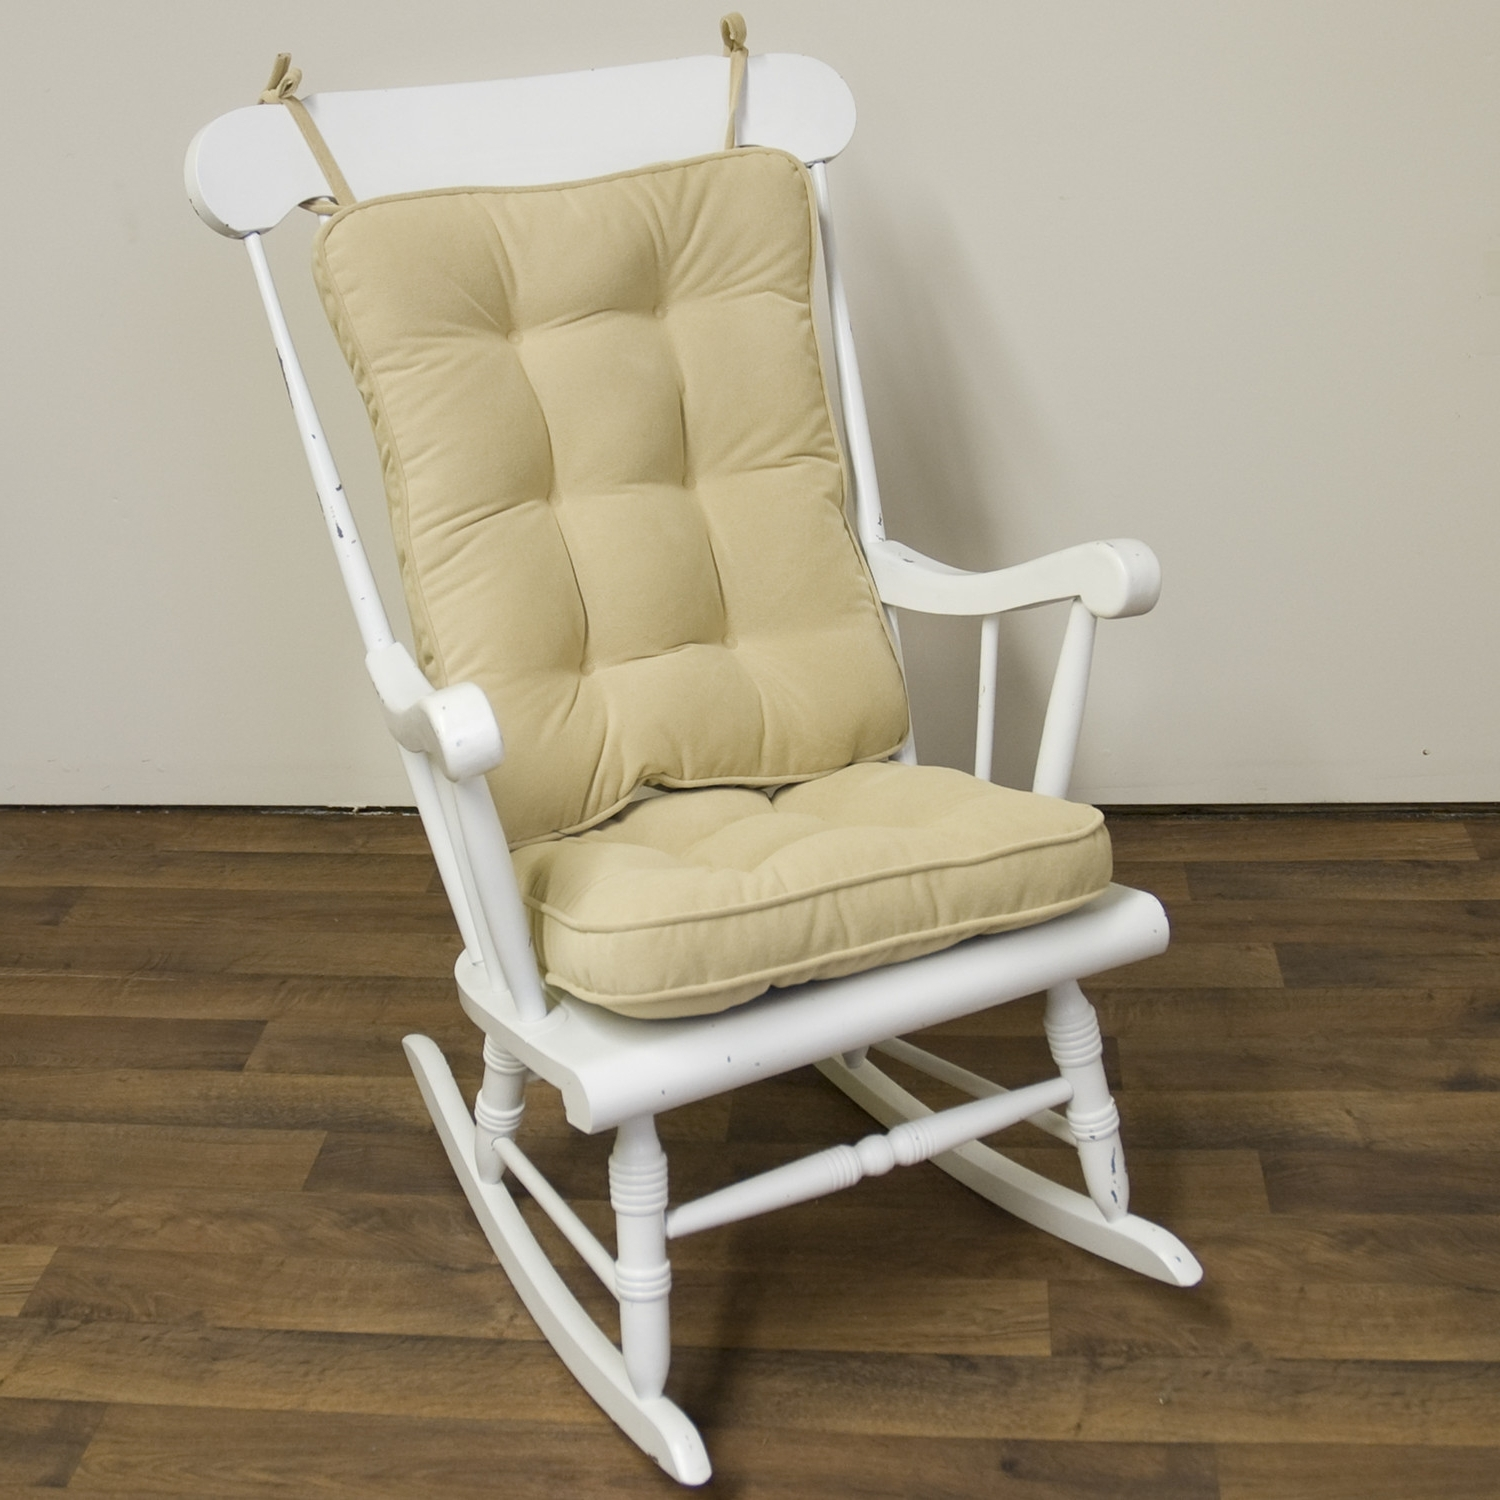 Popular Piece Rocking Chair Cushion Set Cream Color Seat Back Nylon Regarding Rocking Chairs With Lumbar Support (View 8 of 15)